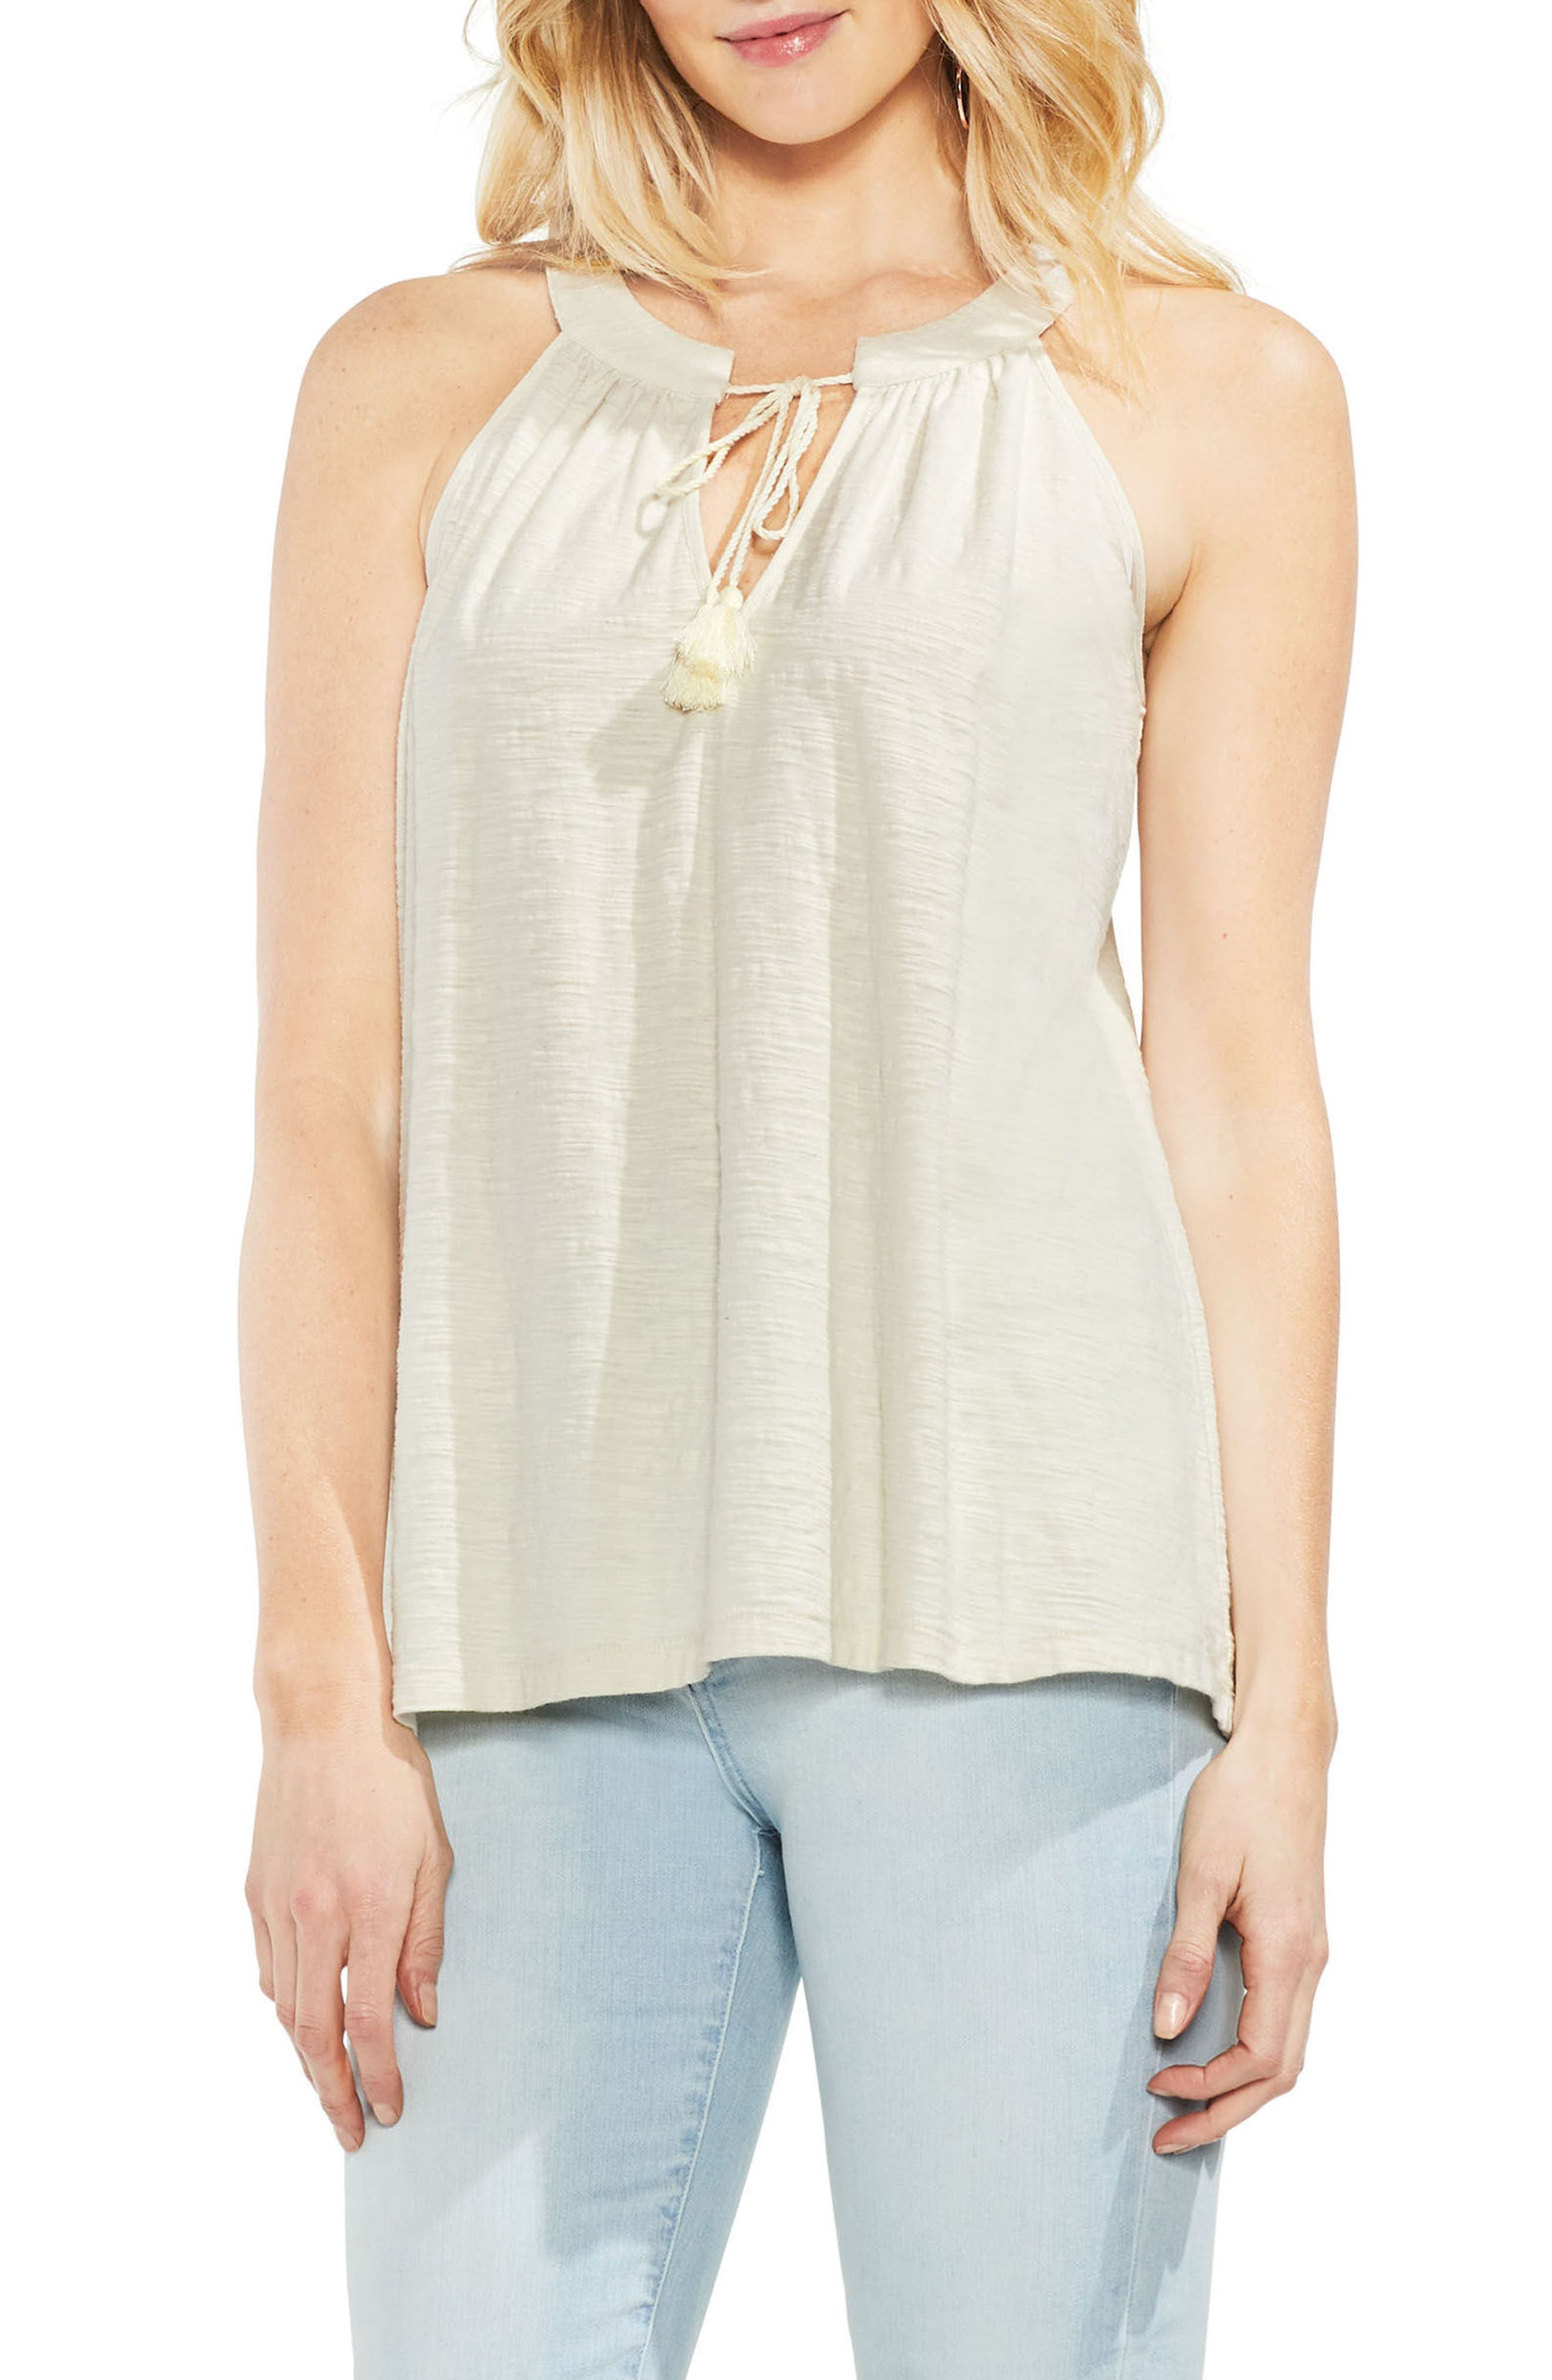 Alternate Image 1 Selected - Vince Camuto Keyhole Neck Tank Top